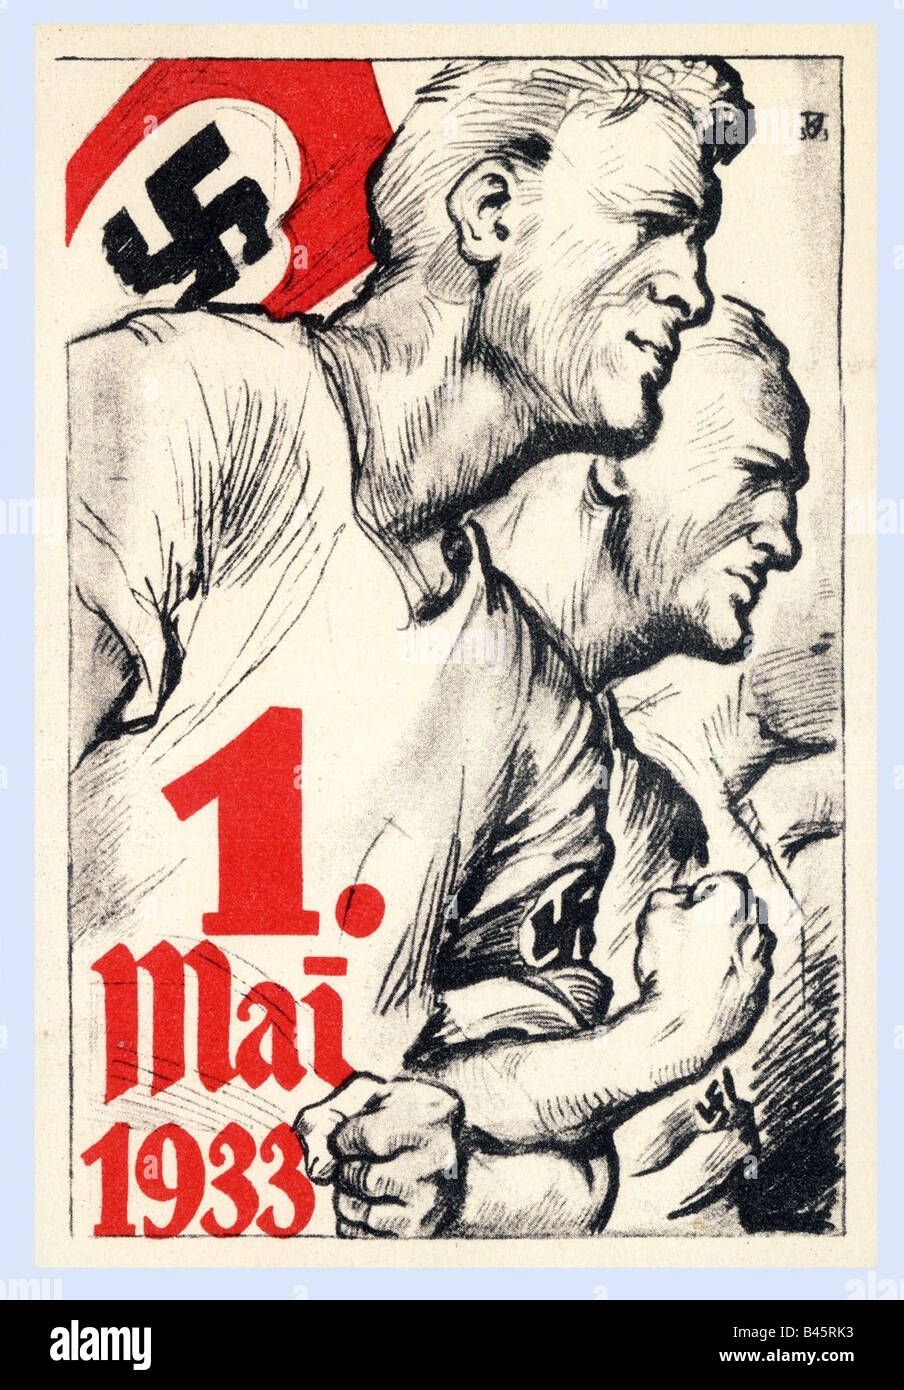 Nazism/National Socialism, propaganda, poster, First of May 1933, 1.5.1933, Nazi Germany, Third Reich, NS, , Additional - Stock Image